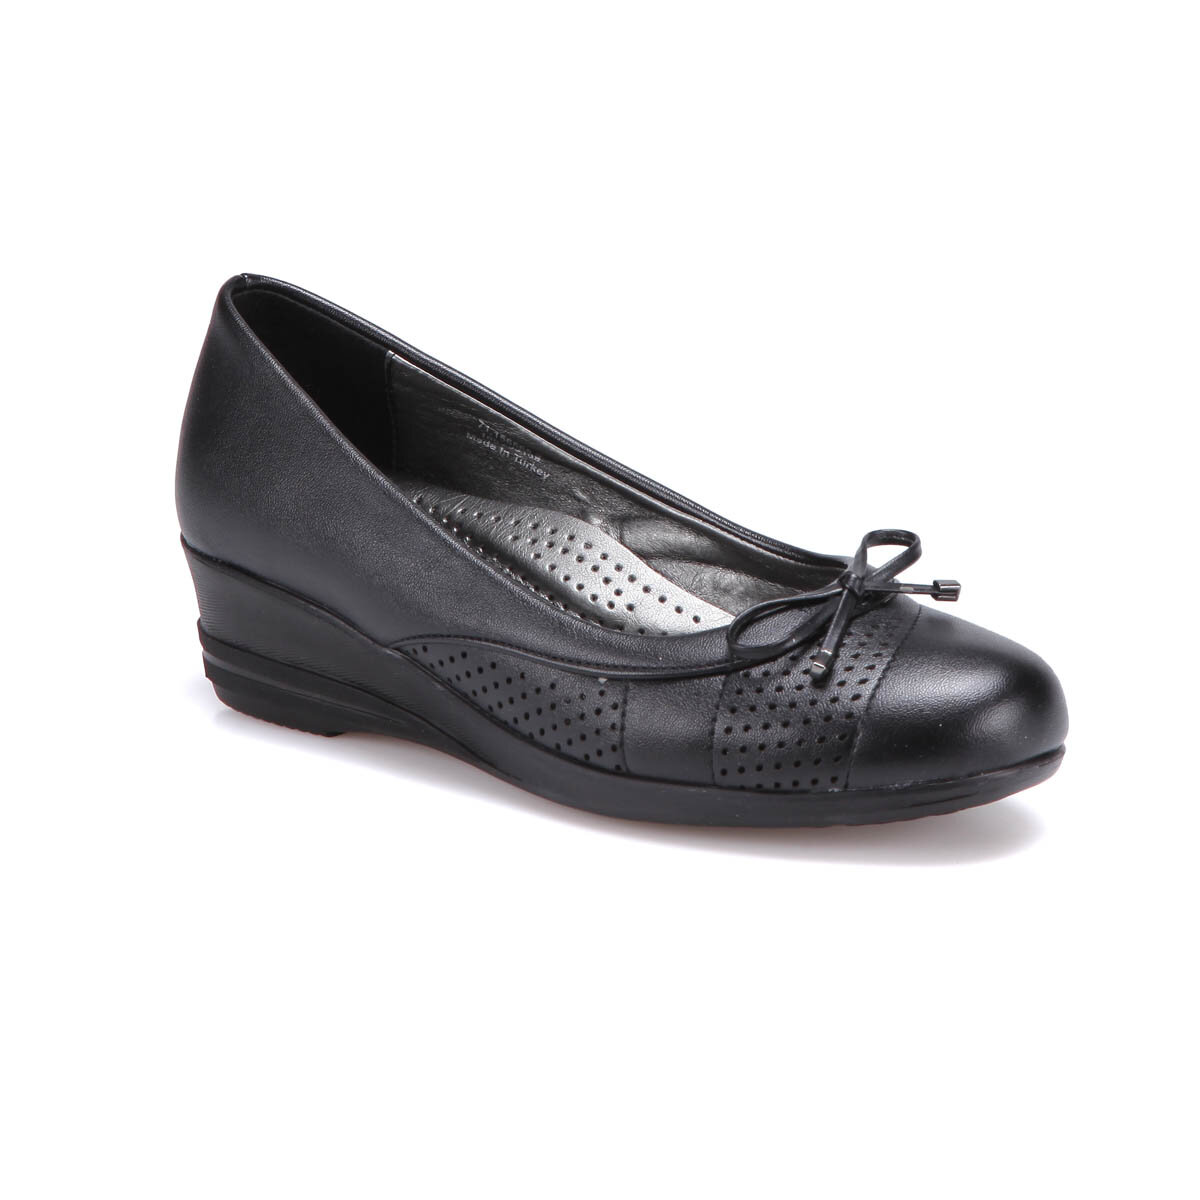 FLO 71.156568.Z Black Women 'S Classic Shoes Polaris